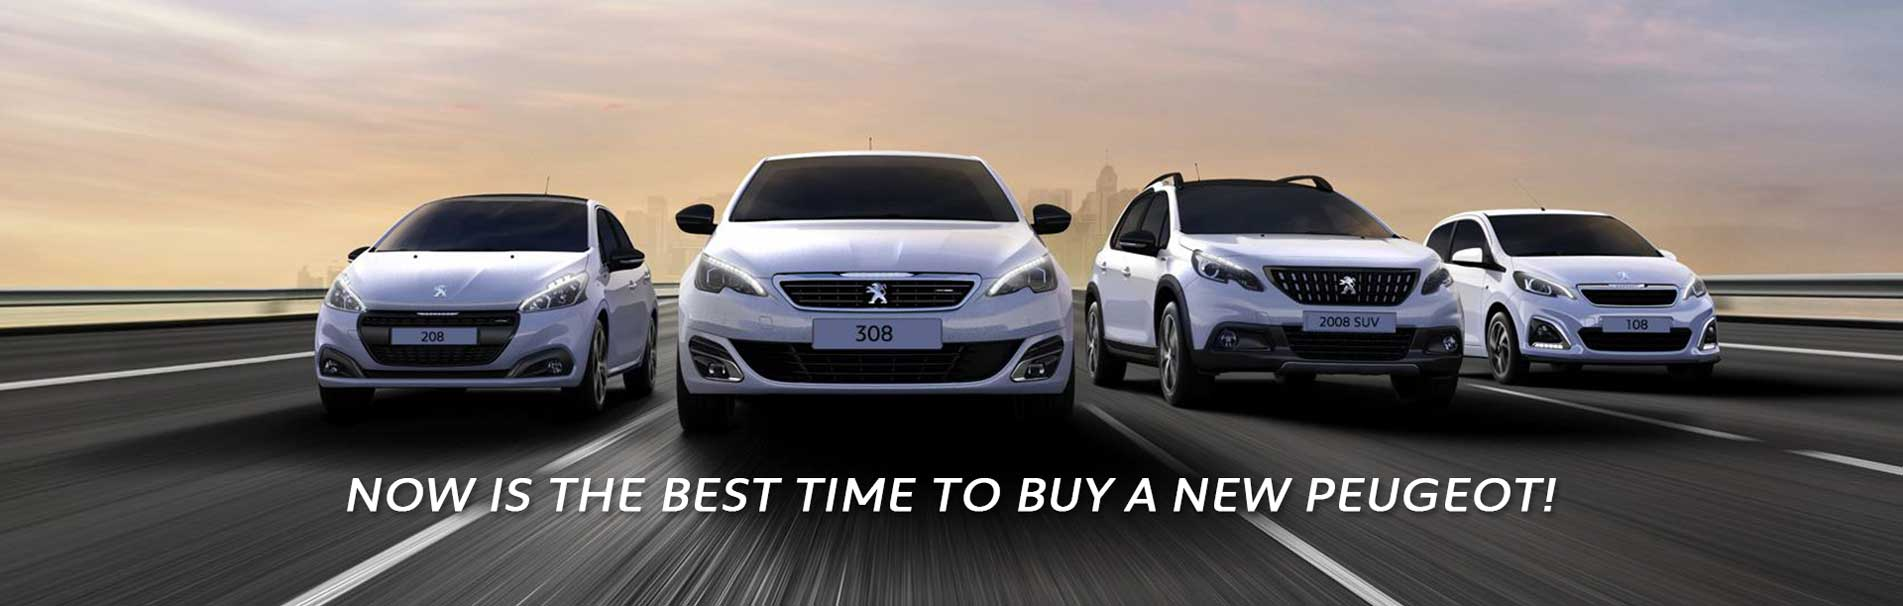 now-is-the-best-time-to-buy-a-new-peugeot-sli